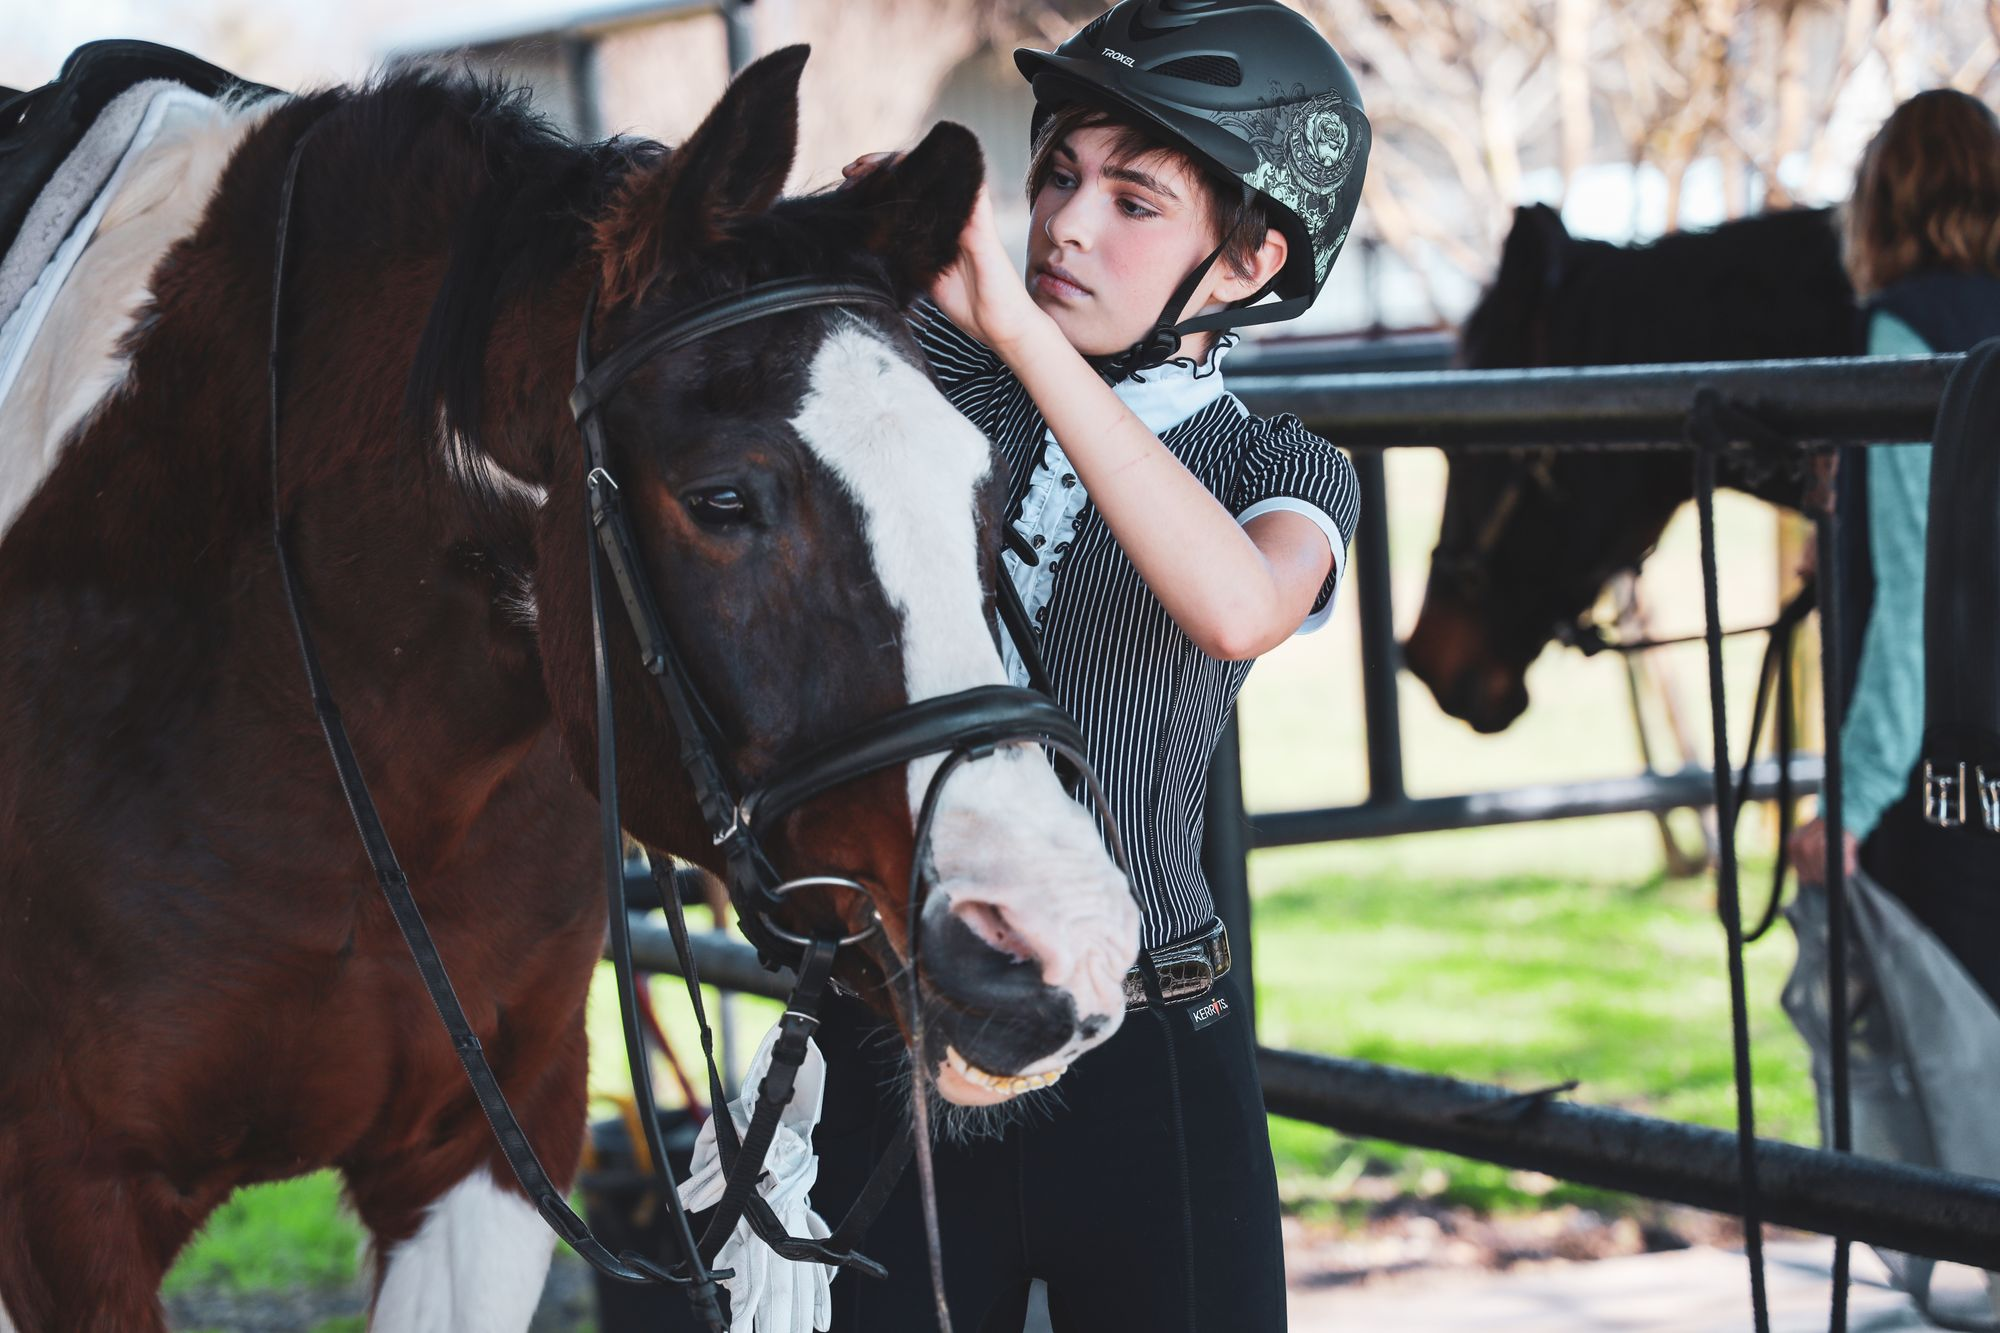 Dressage for young riders